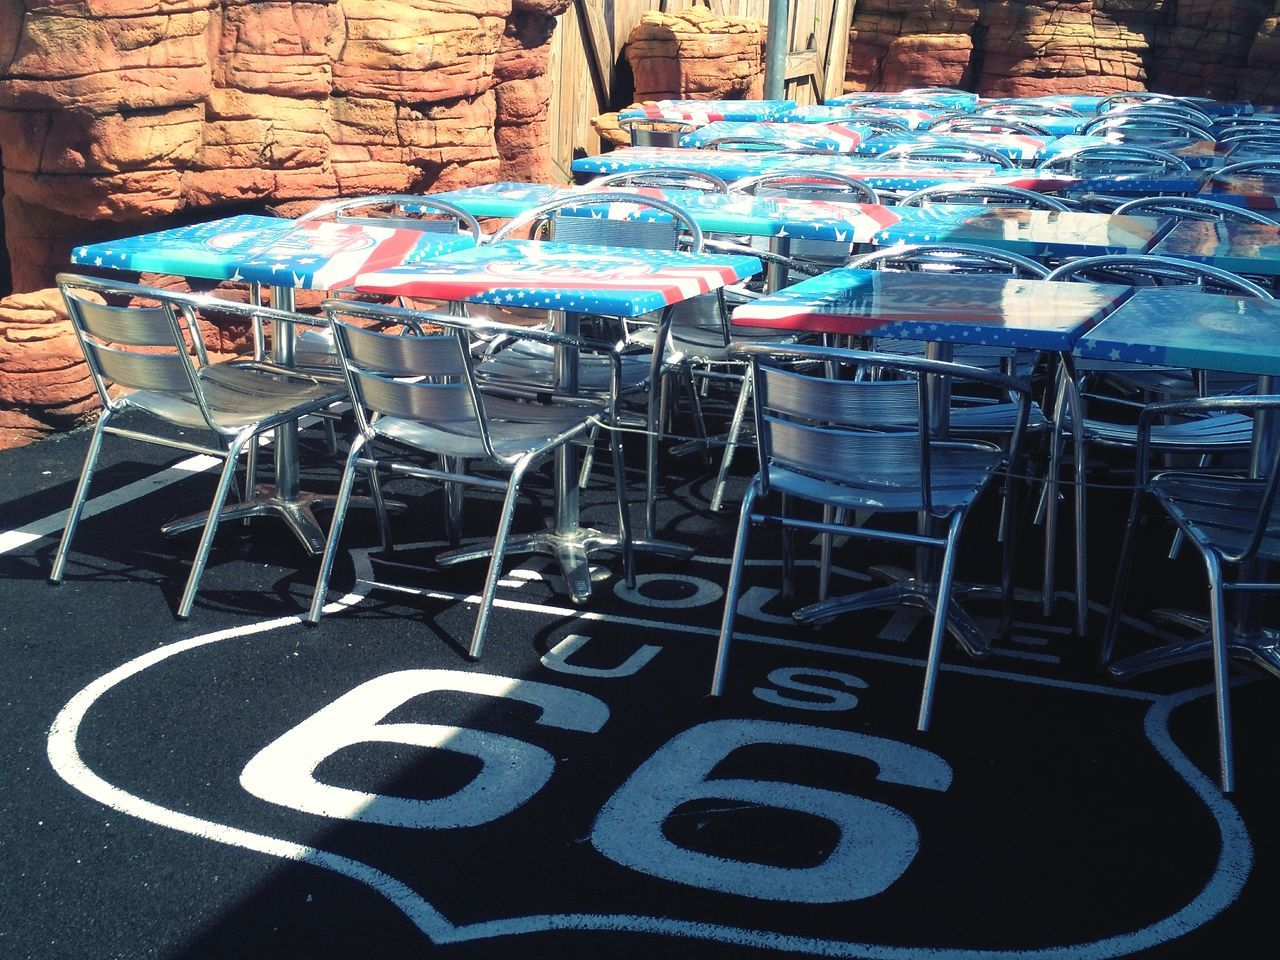 No People Day Outdoors Table Restaurant Terrace Iron - Metal Iron Flag American America United States Seat Vintage Old Style American Dream Life Road Road 66